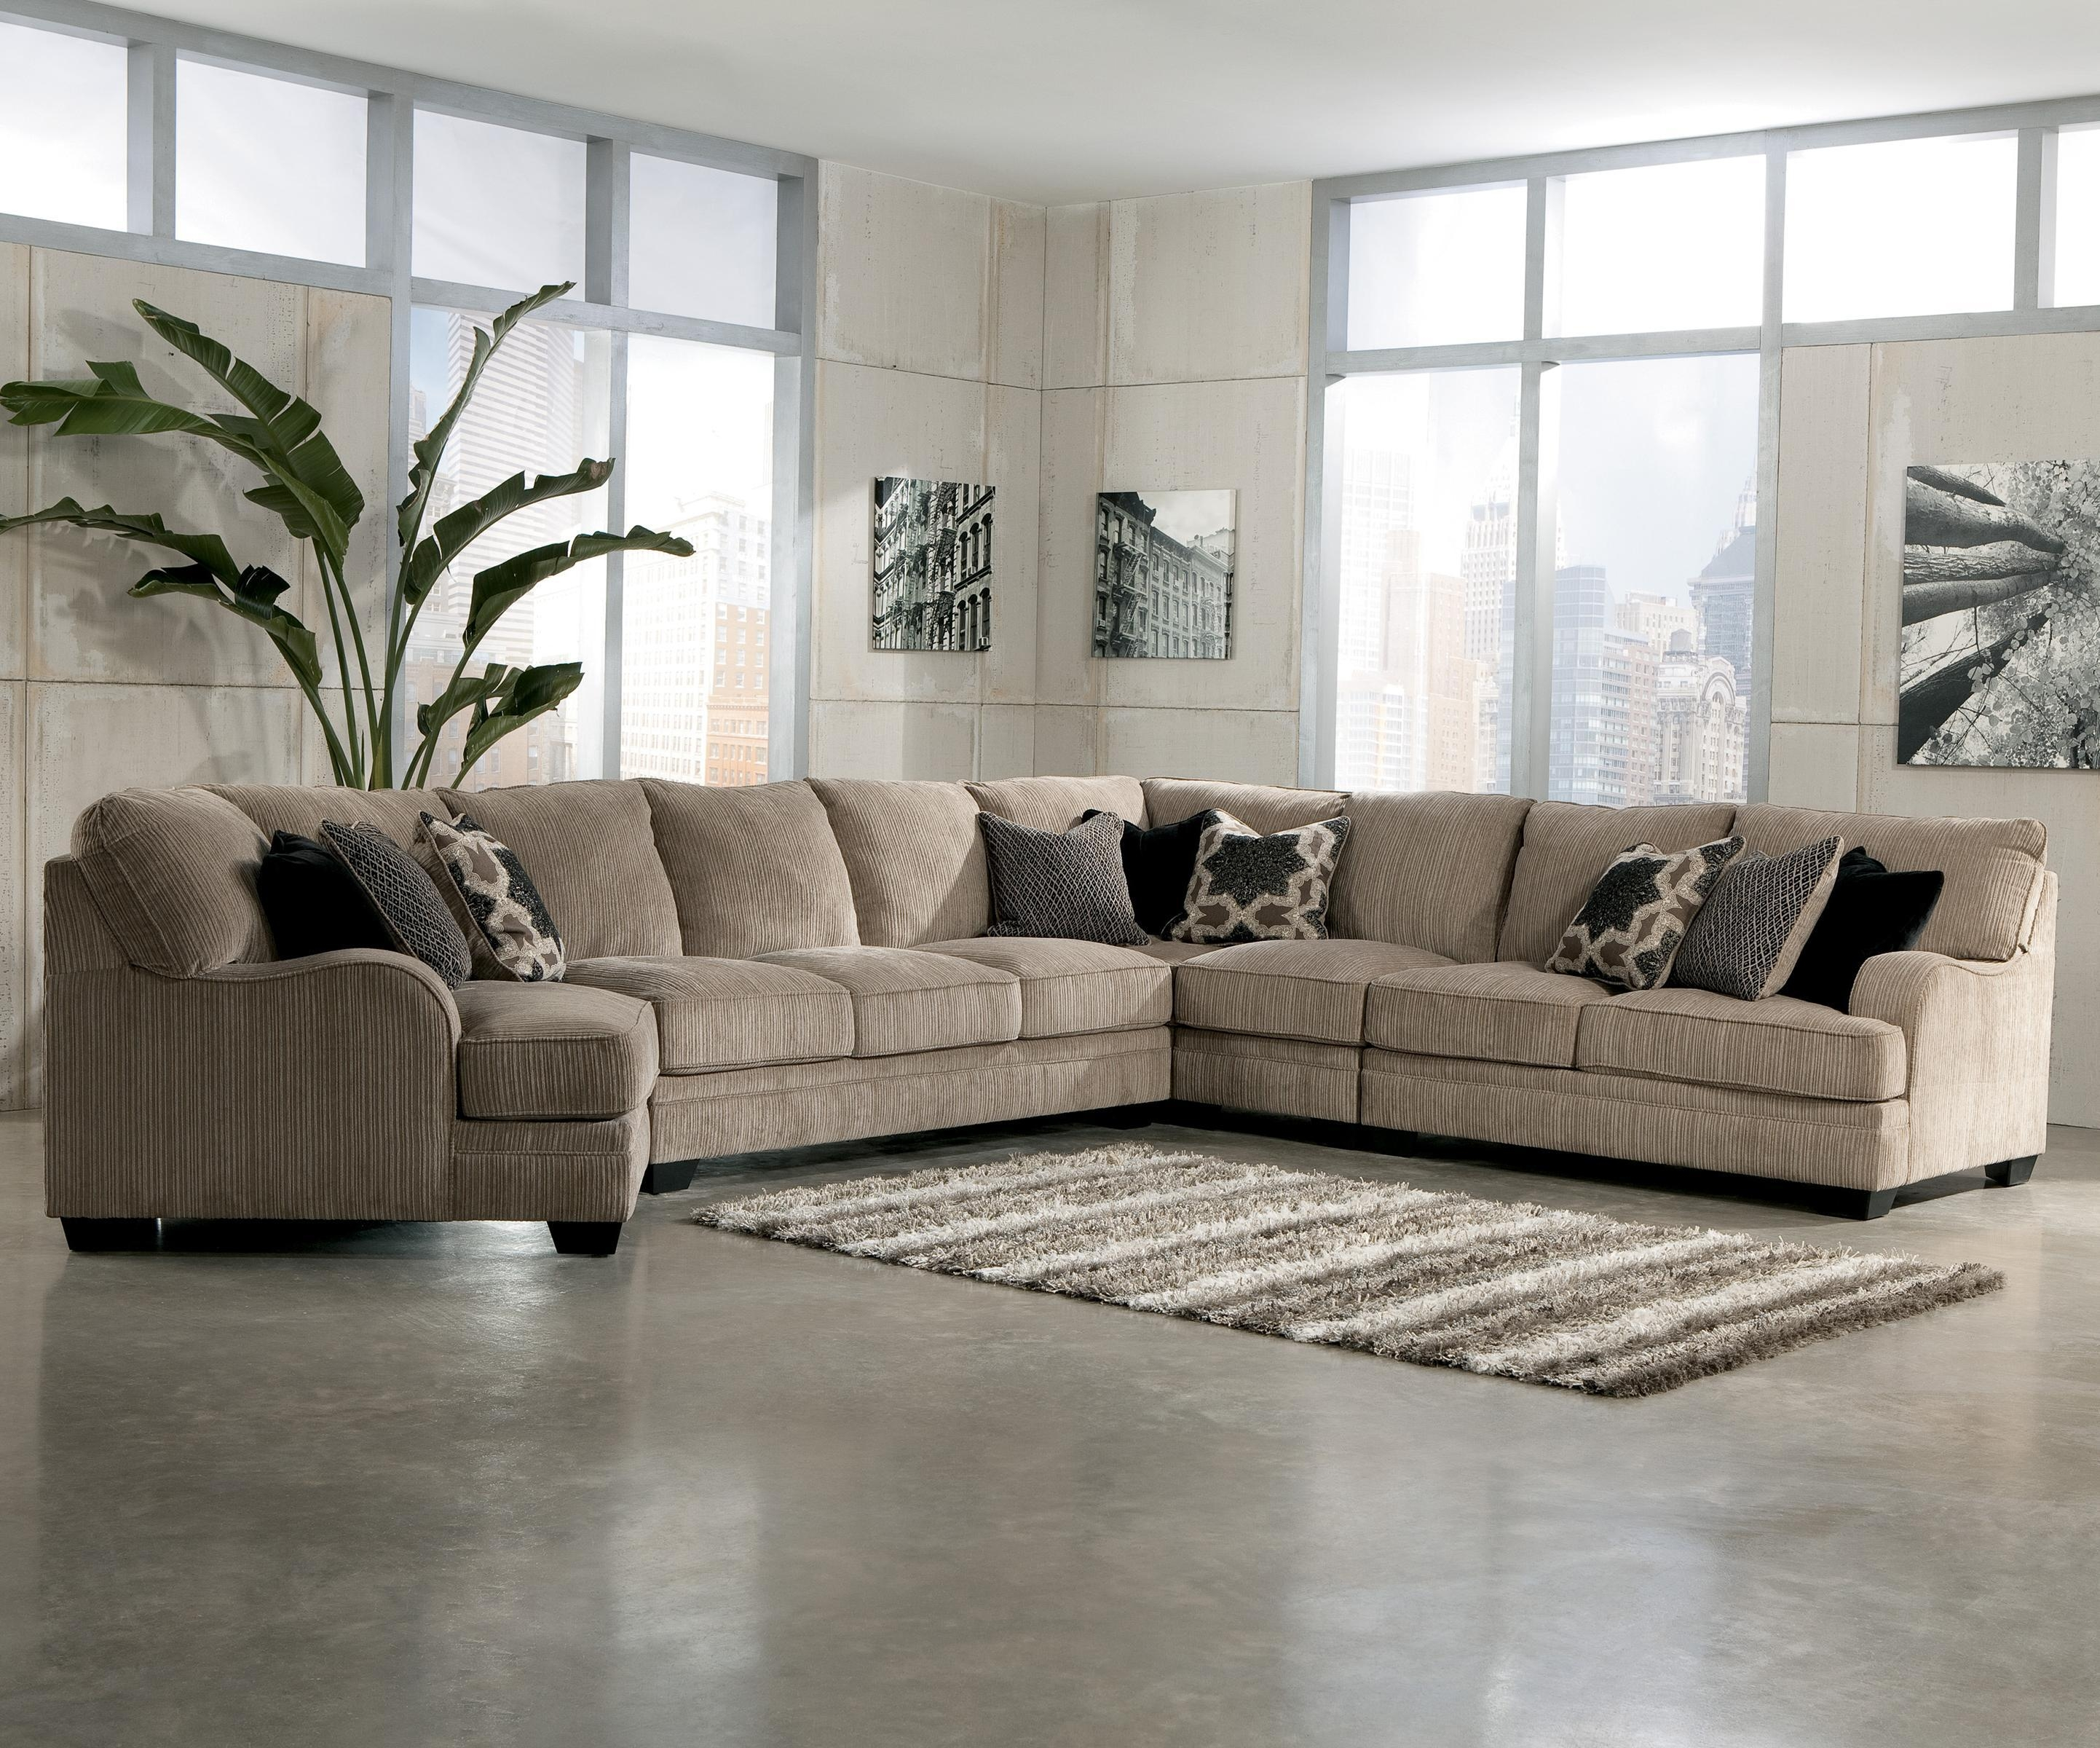 Ashley Furniture Sectional Couches (View 19 of 20)